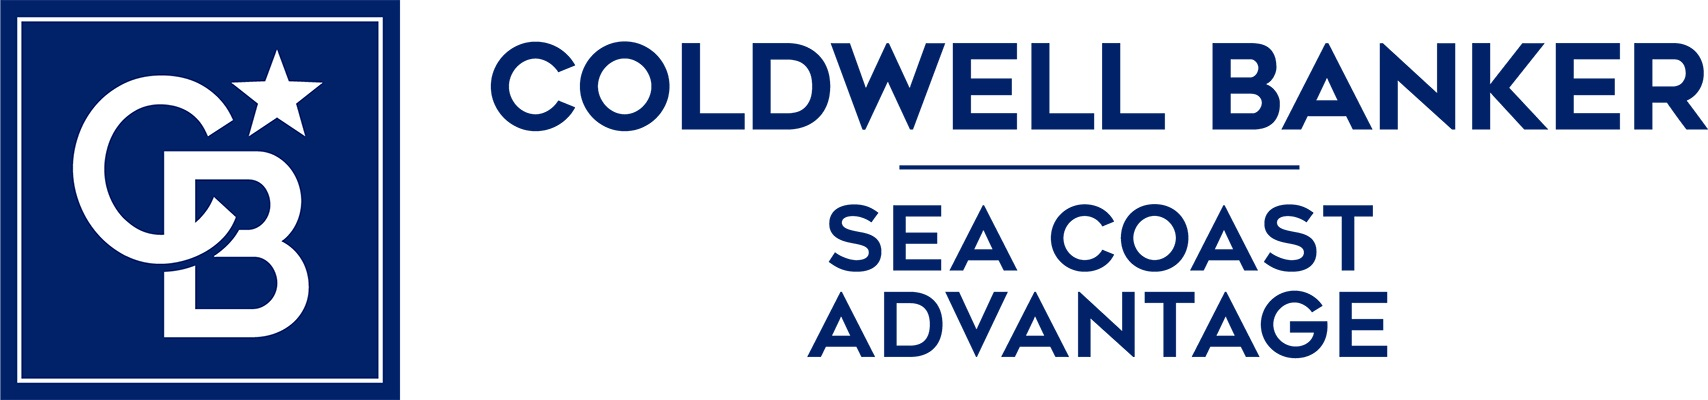 Trisha Dean - Coldwell Banker Sea Coast Advantage Realty